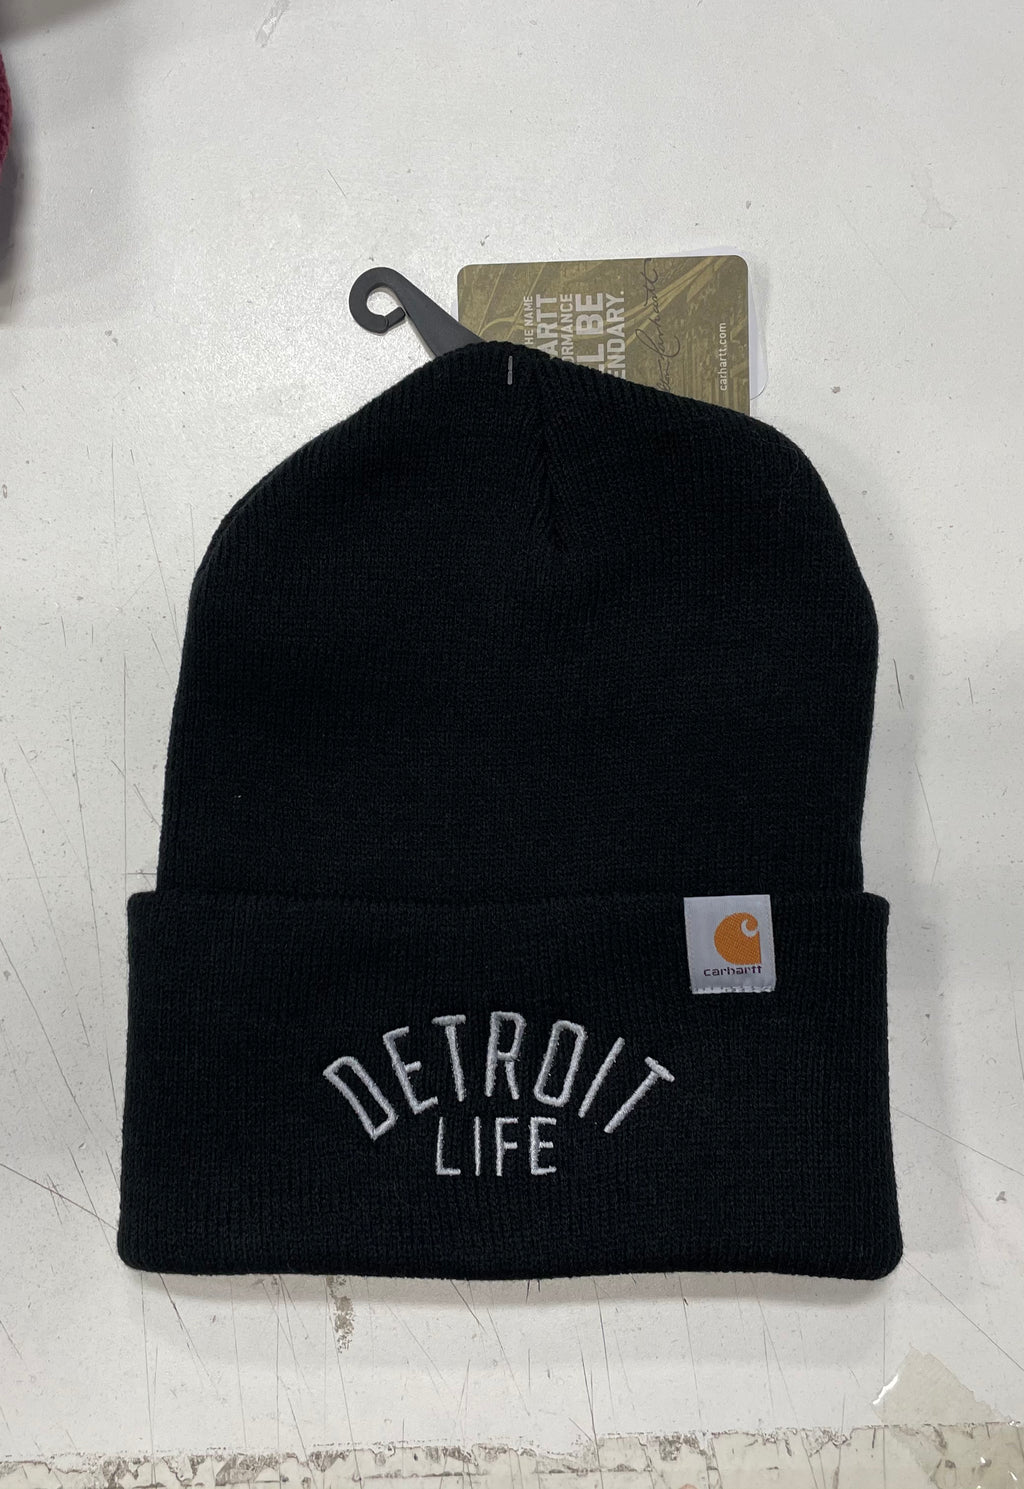 DETROIT LIFE - CARHARTT WINTER HAT